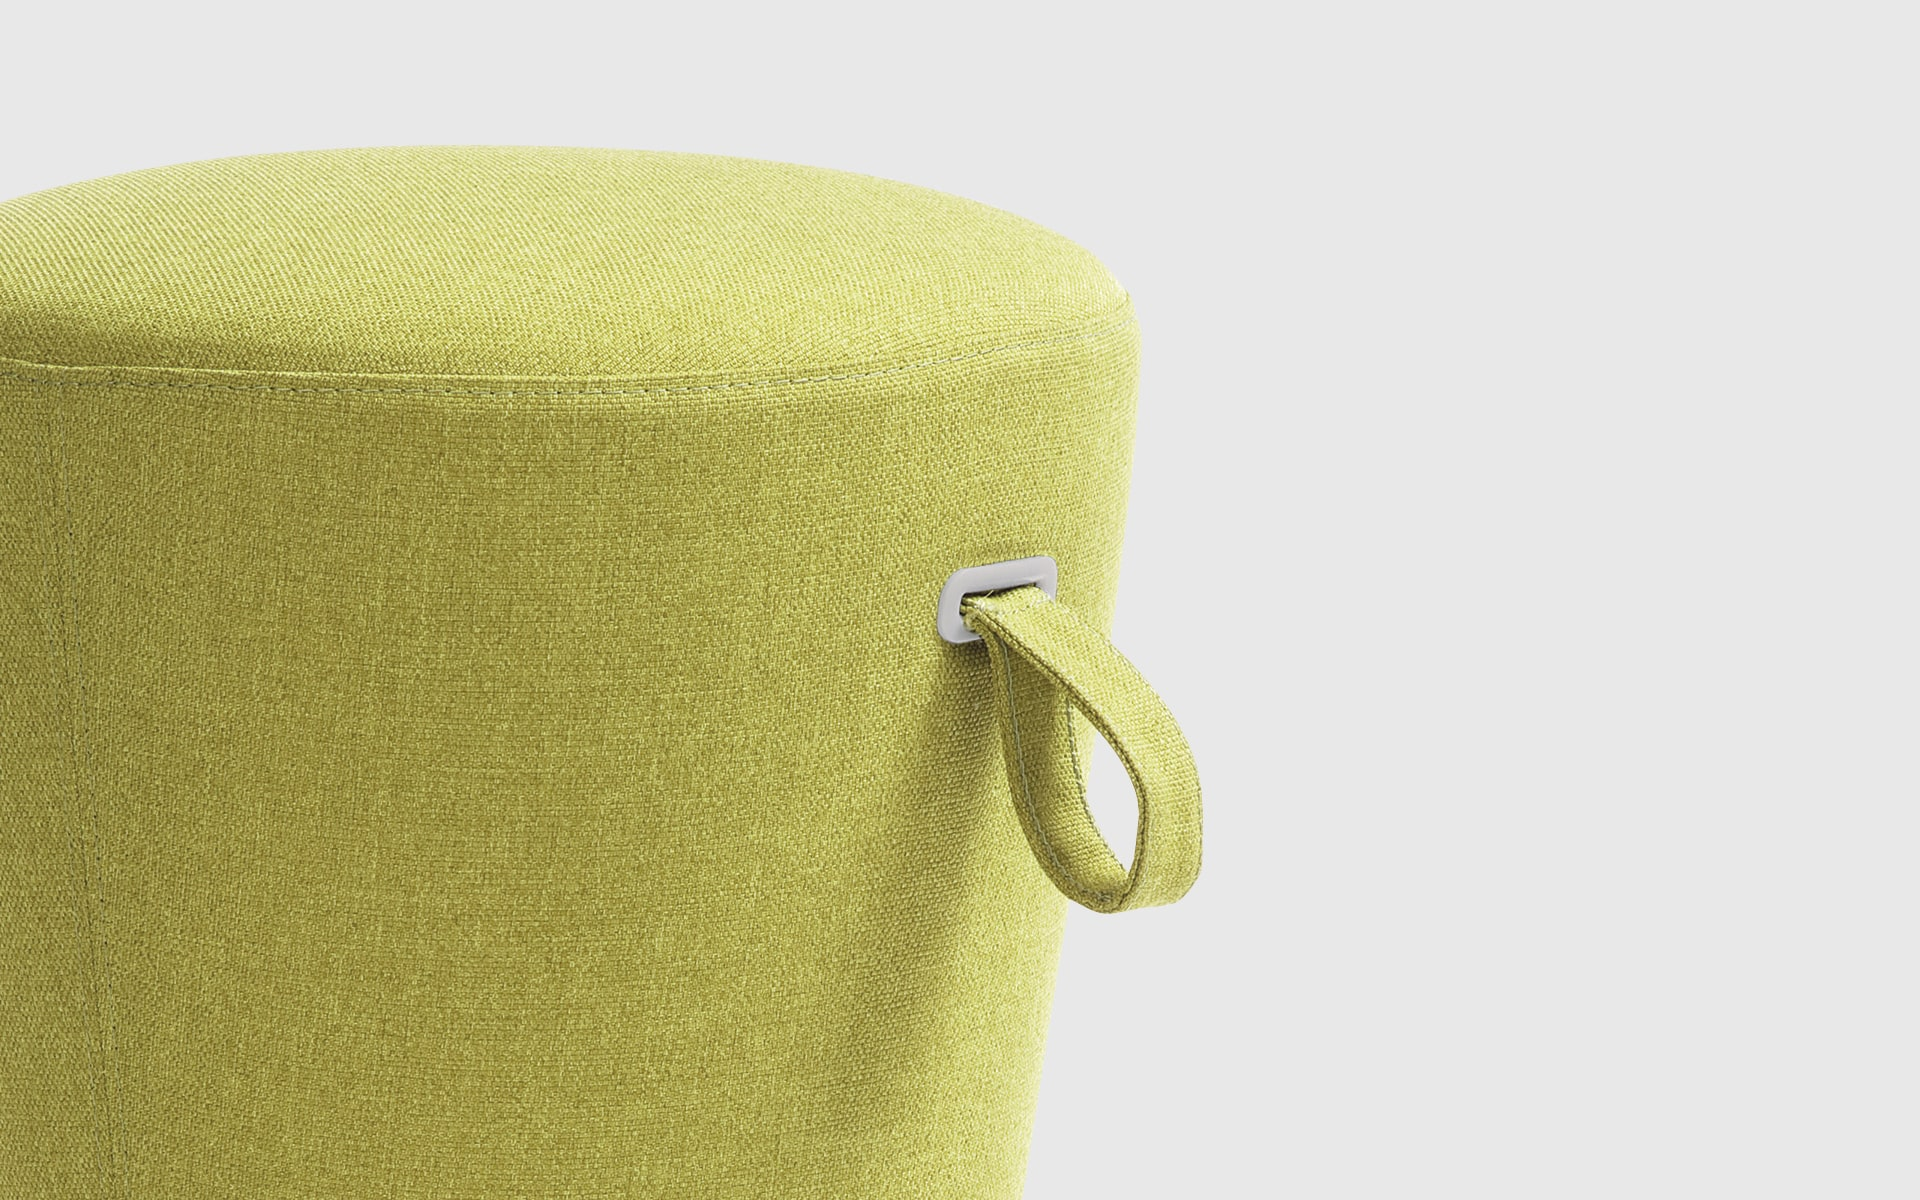 Close-up of the Profim Mickey stool by ITO Design with yellow green upholstery